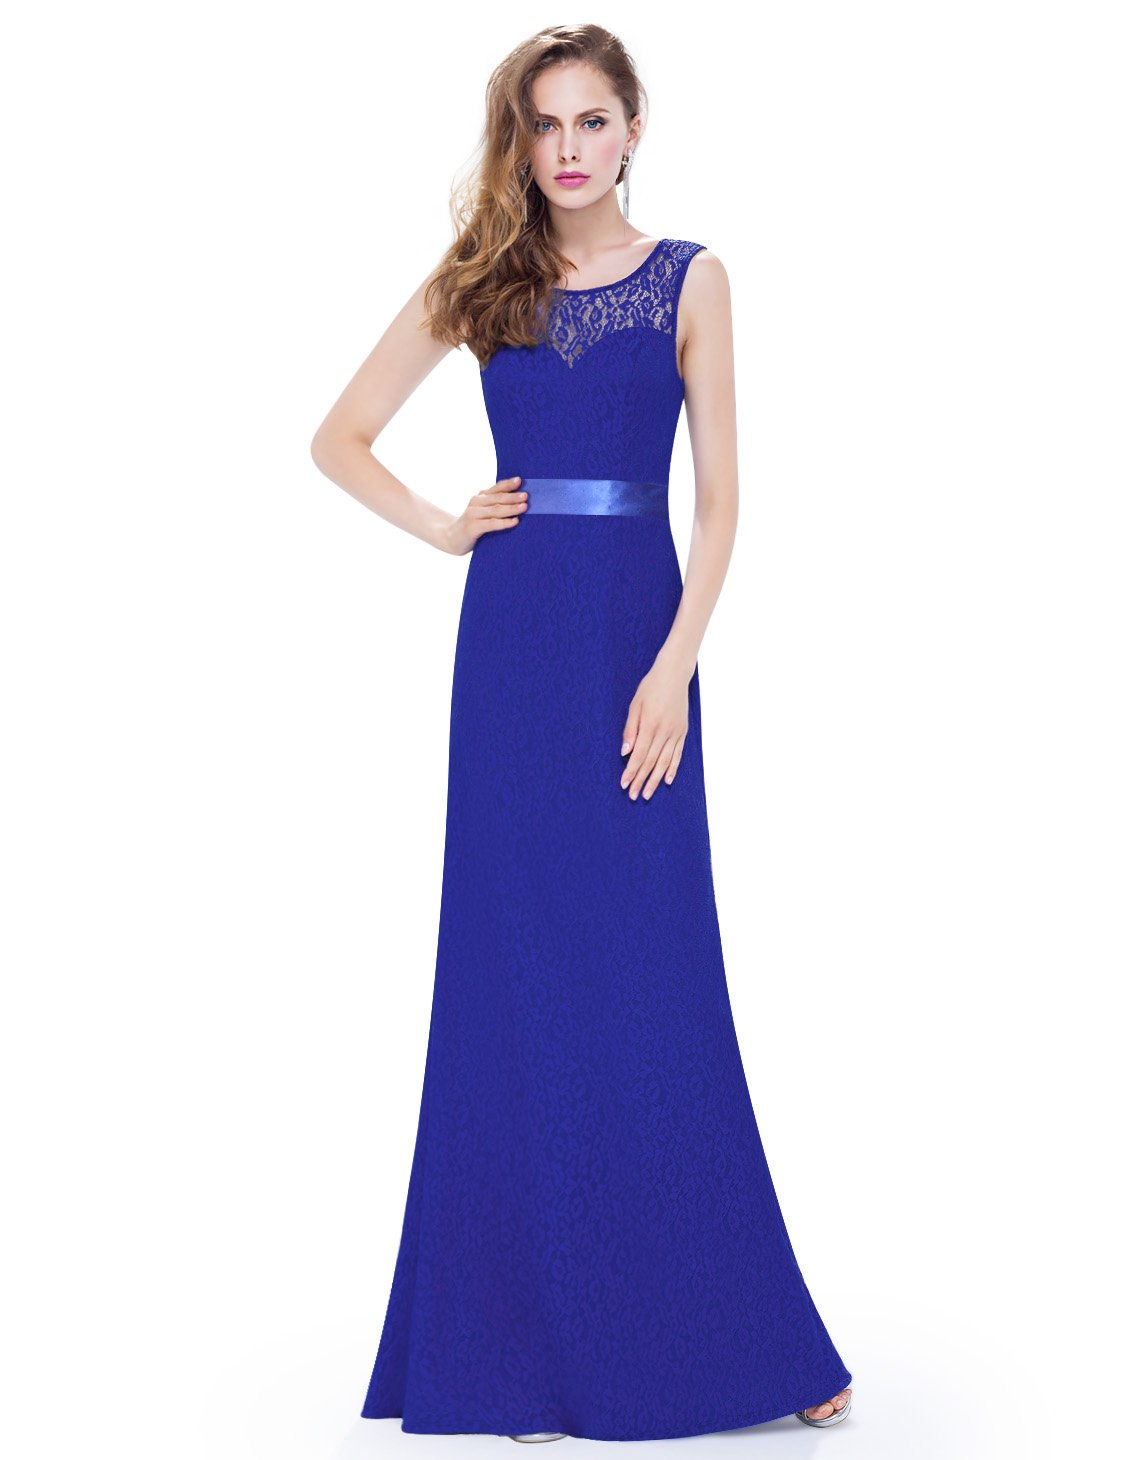 Ever-Pretty Womens Illusion Neckline Long Sleeveless Sexy V-Neck Back Military Ball Dress 14 US Saphire Blue